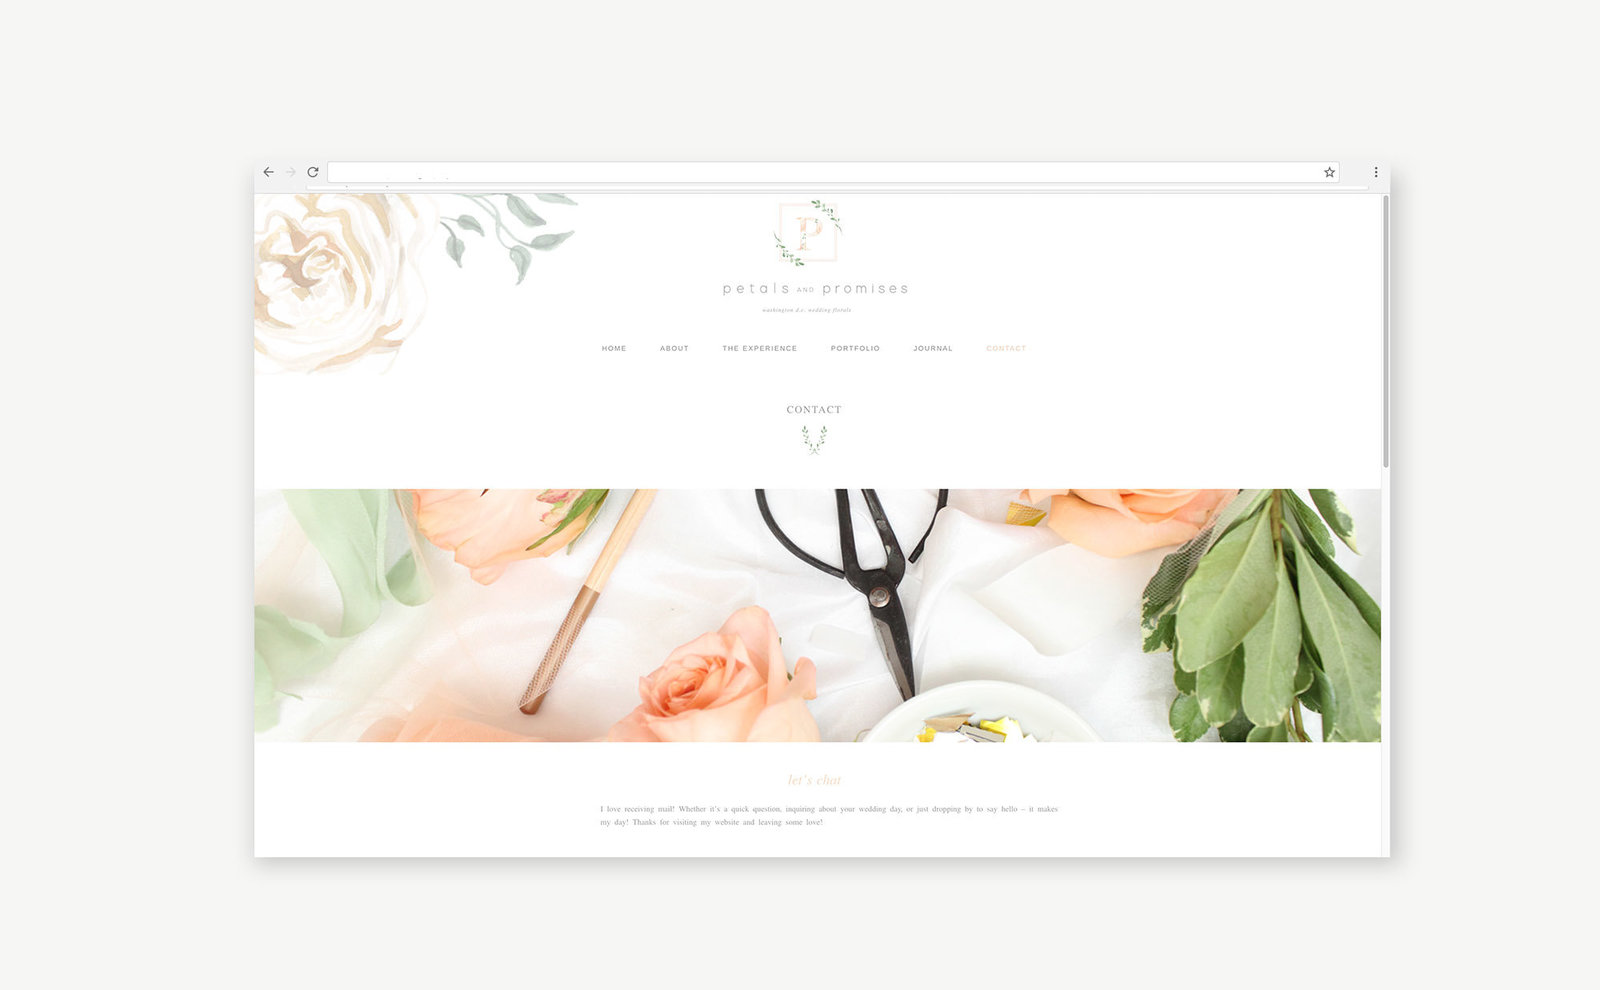 branding-for-creatives-web-design-florist-petals-promises-05